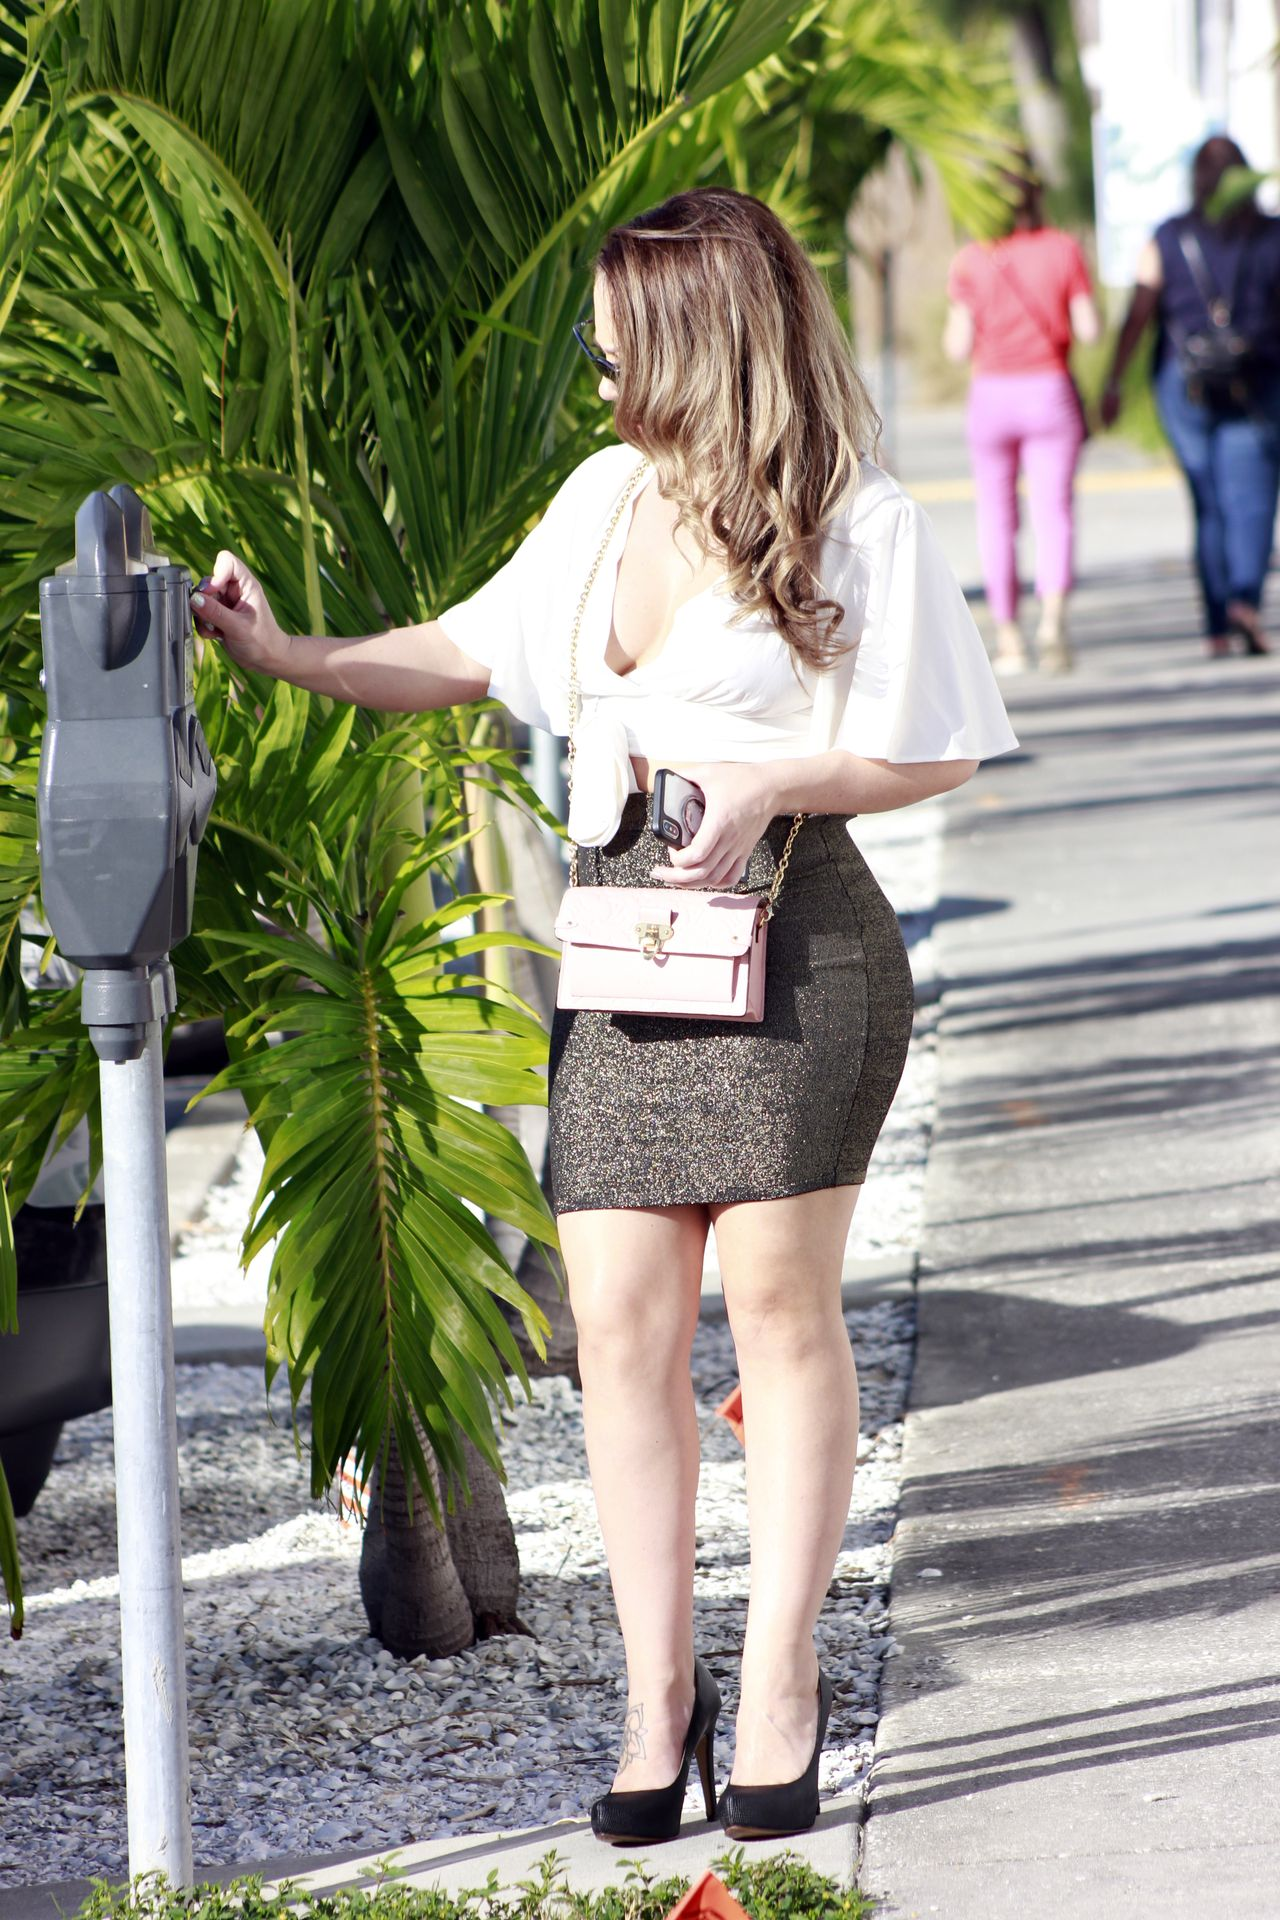 Carmen Valentina Barely Contains Her Curves Out And About In La 0005